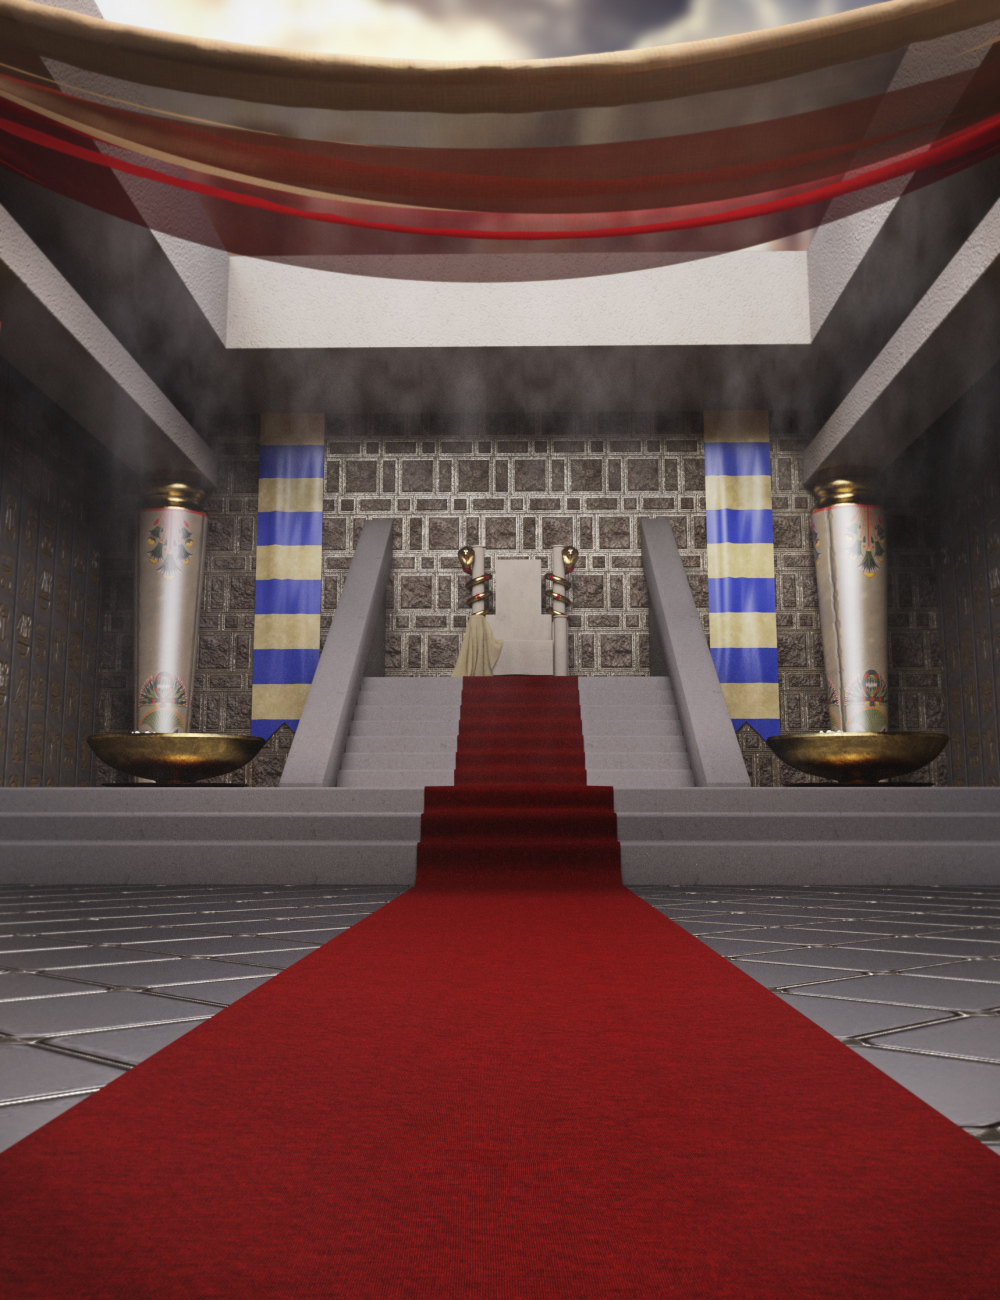 Egyptian Palace by: Neikdian, 3D Models by Daz 3D